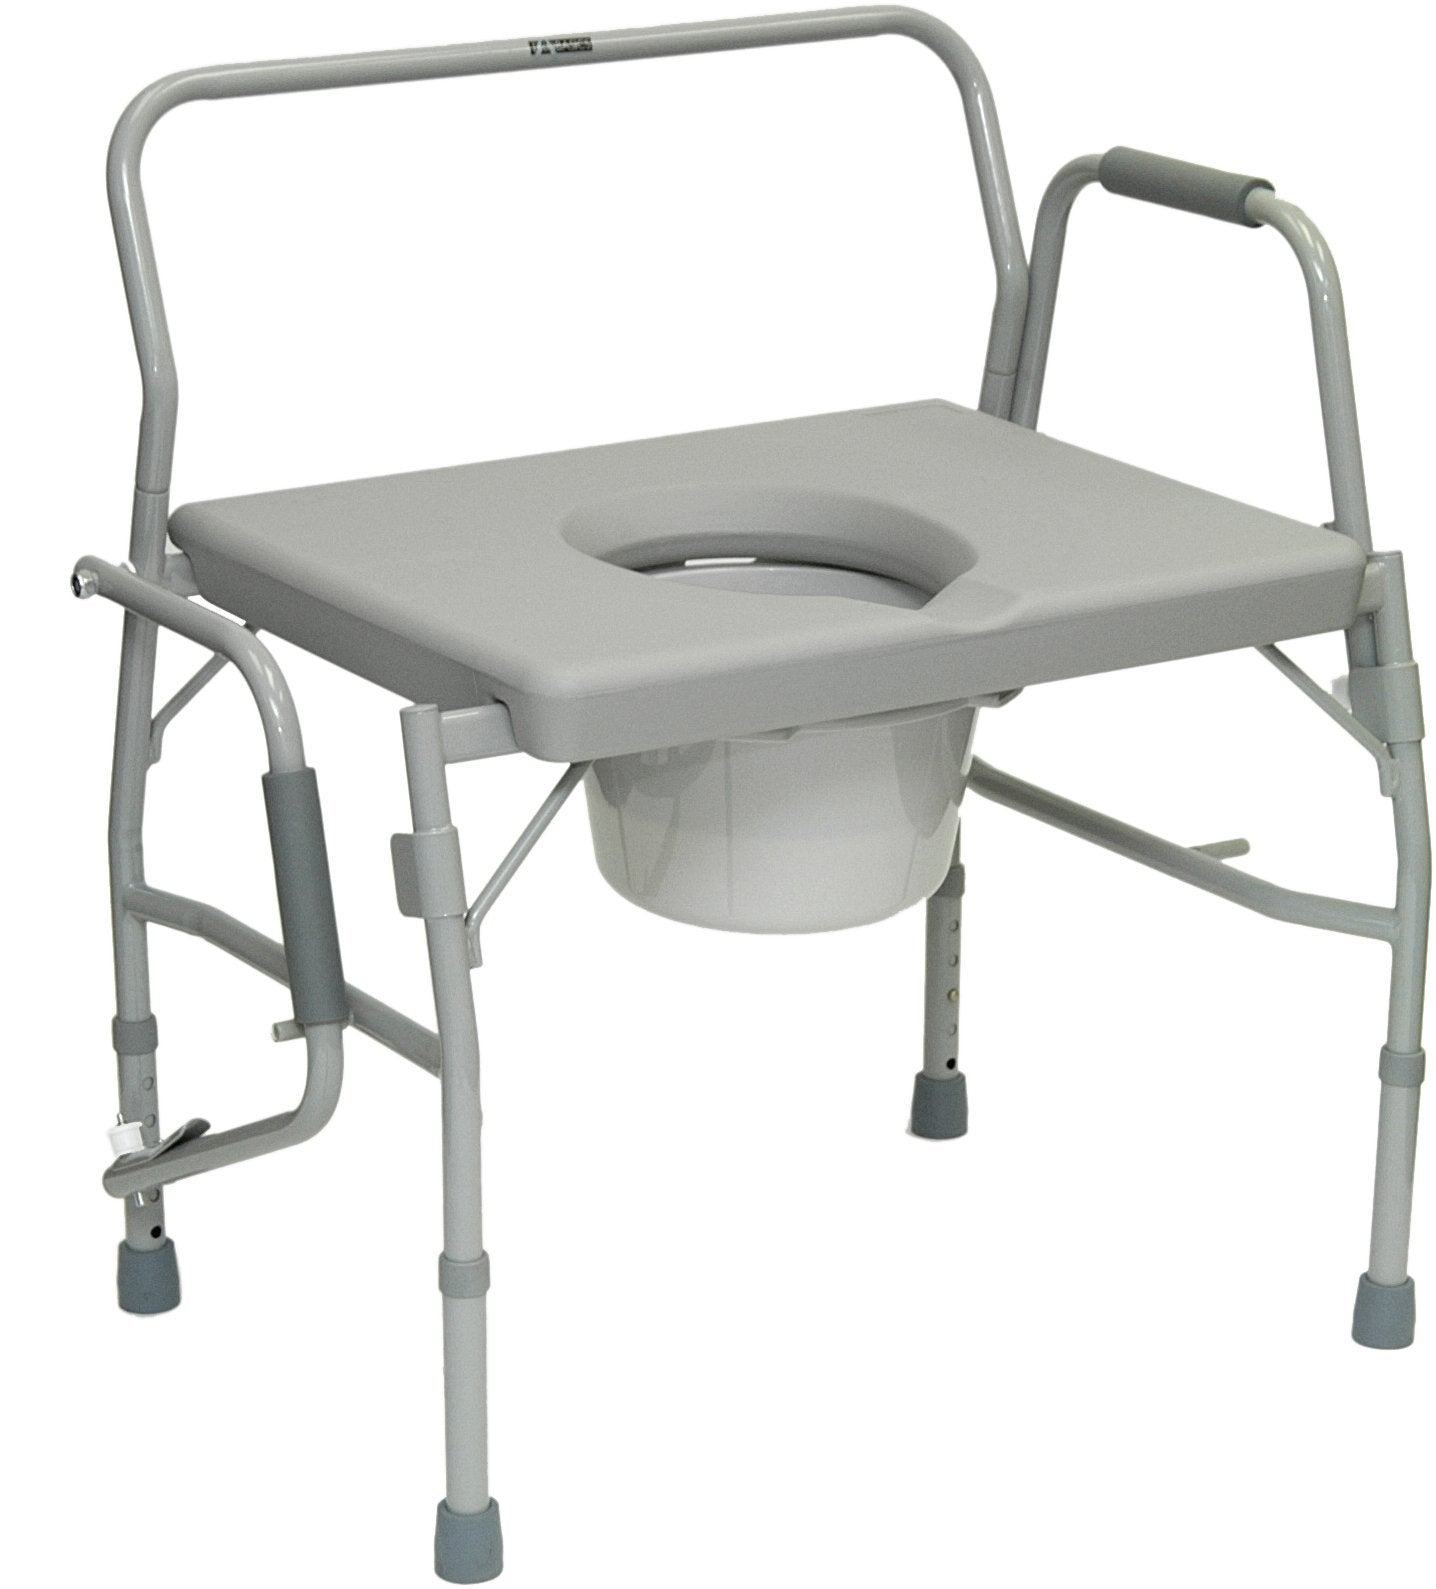 Bariatric Drop Arm Commode, 650lb Weight Capacity - US MED REHAB